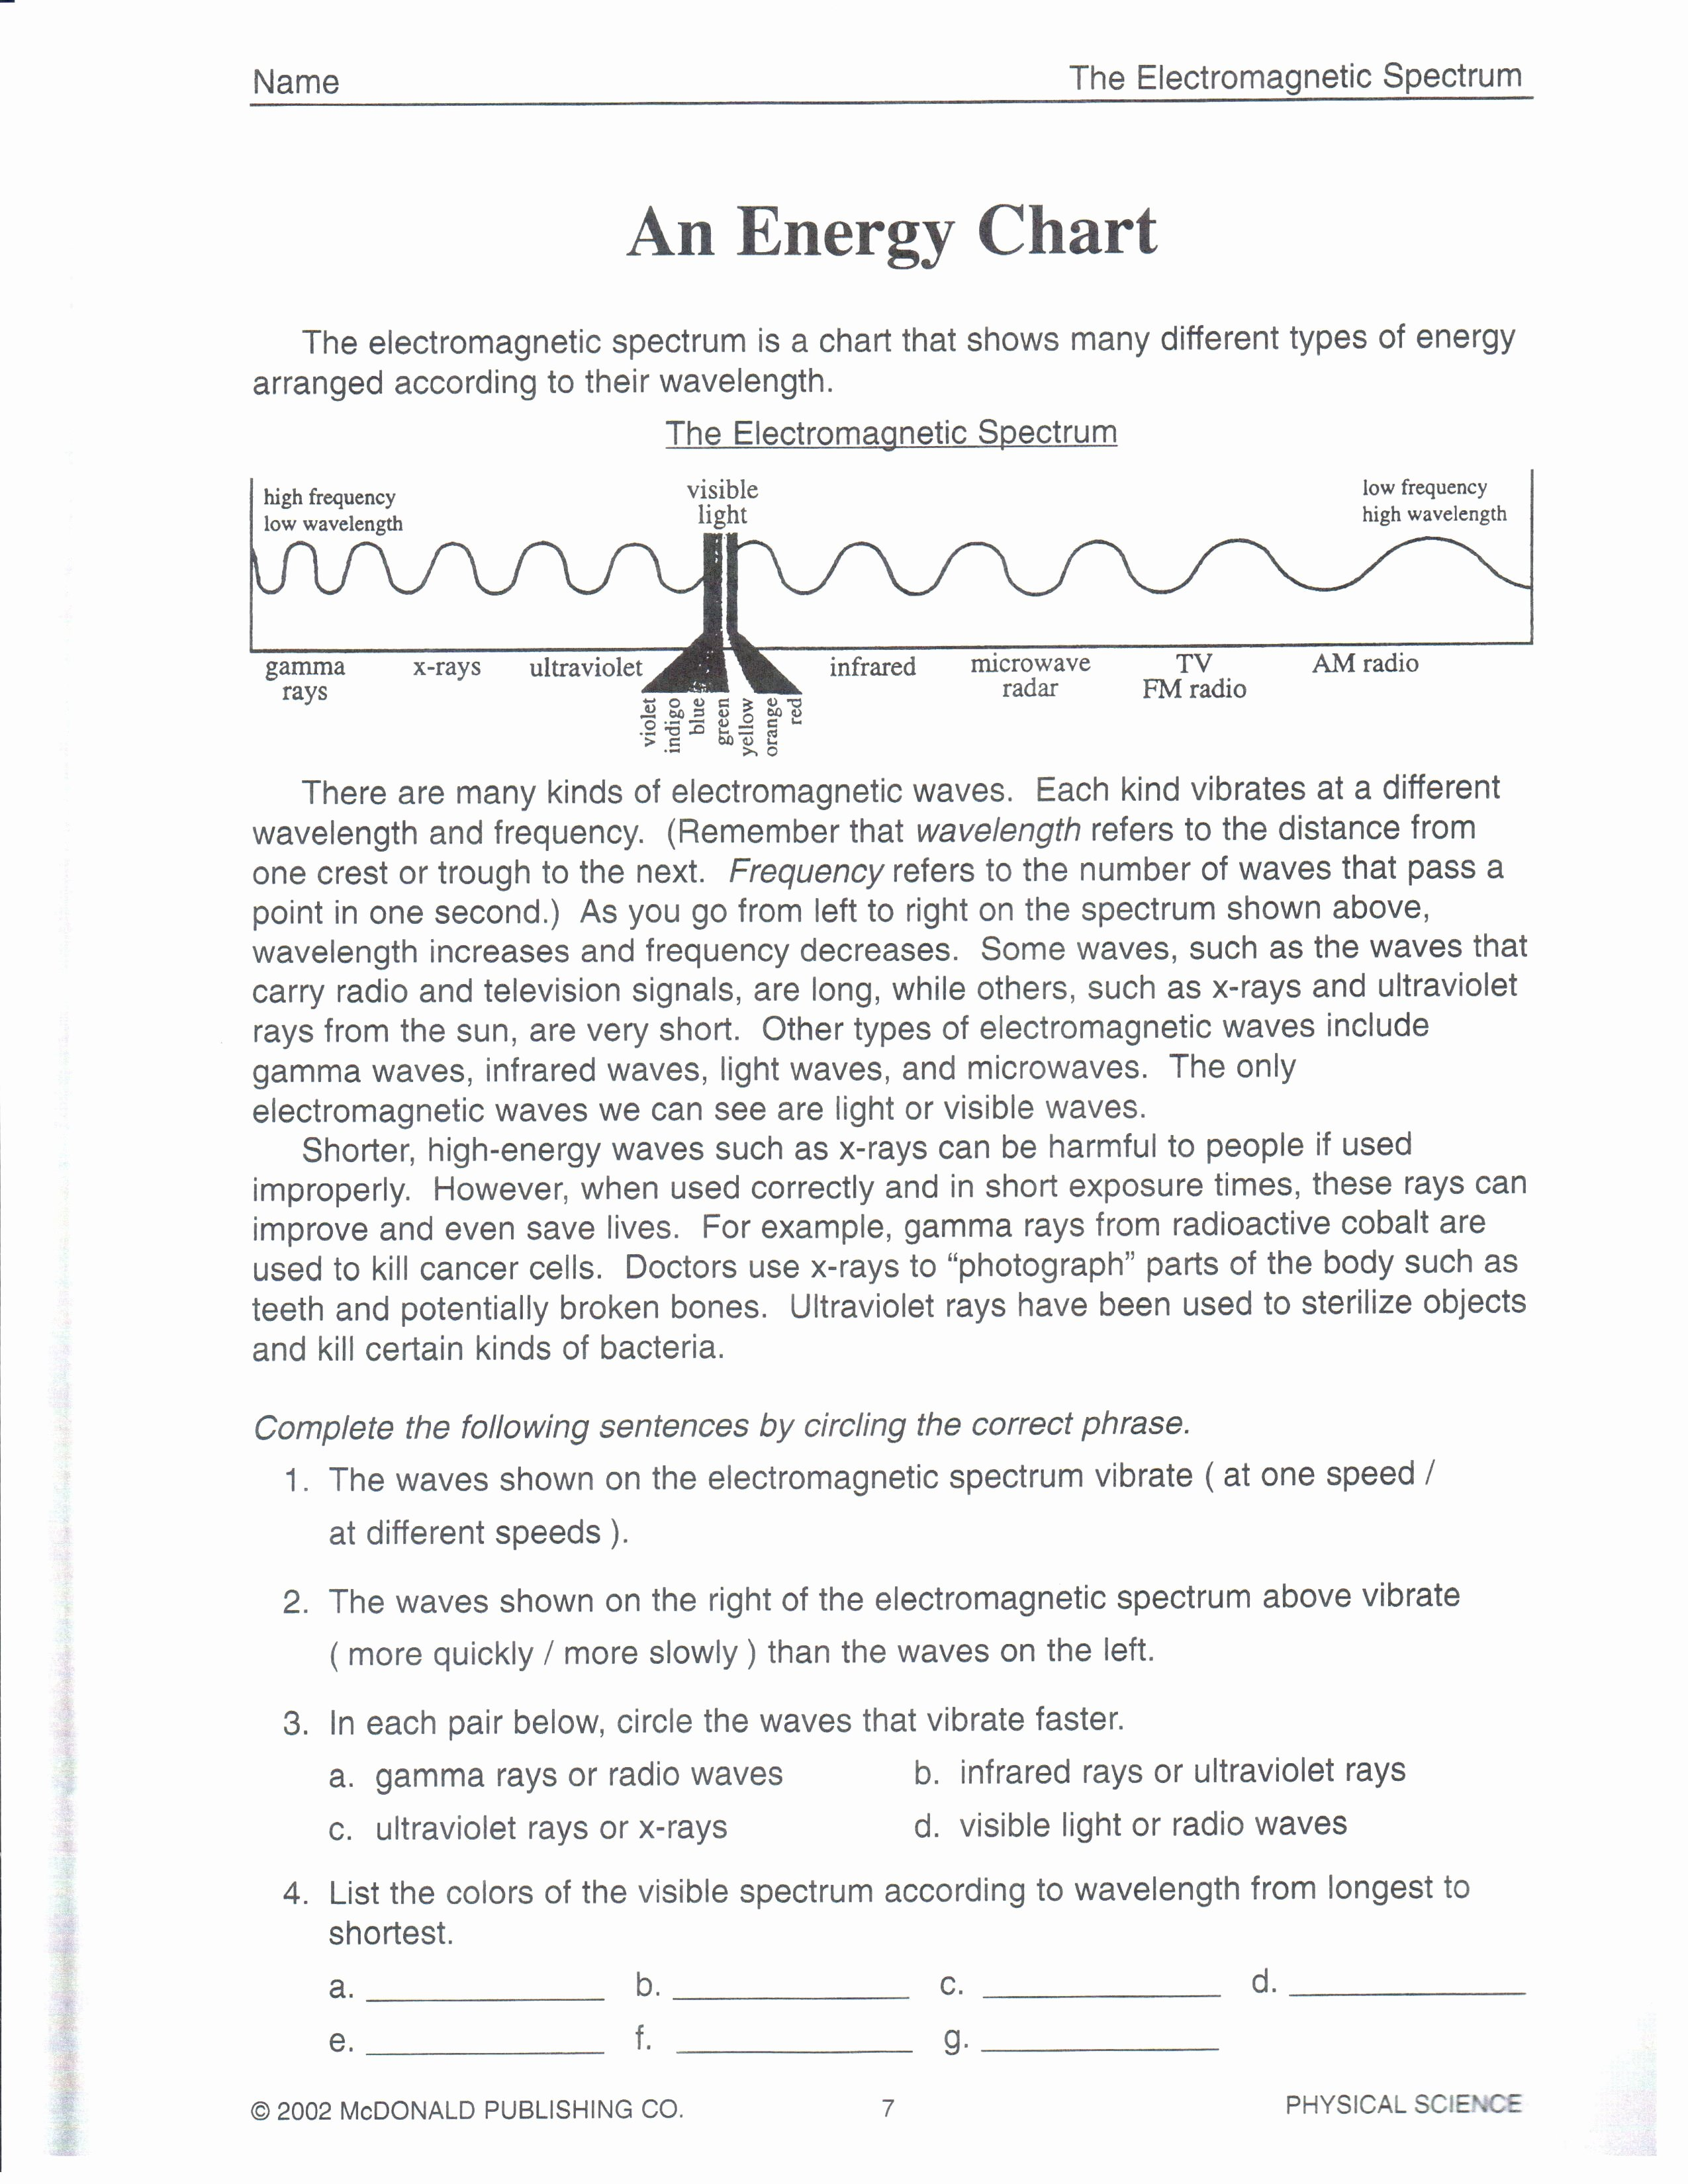 Electromagnetic Waves Worksheet Answers Awesome Worksheet Waves & Electromagnetic Spectrum Worksheet